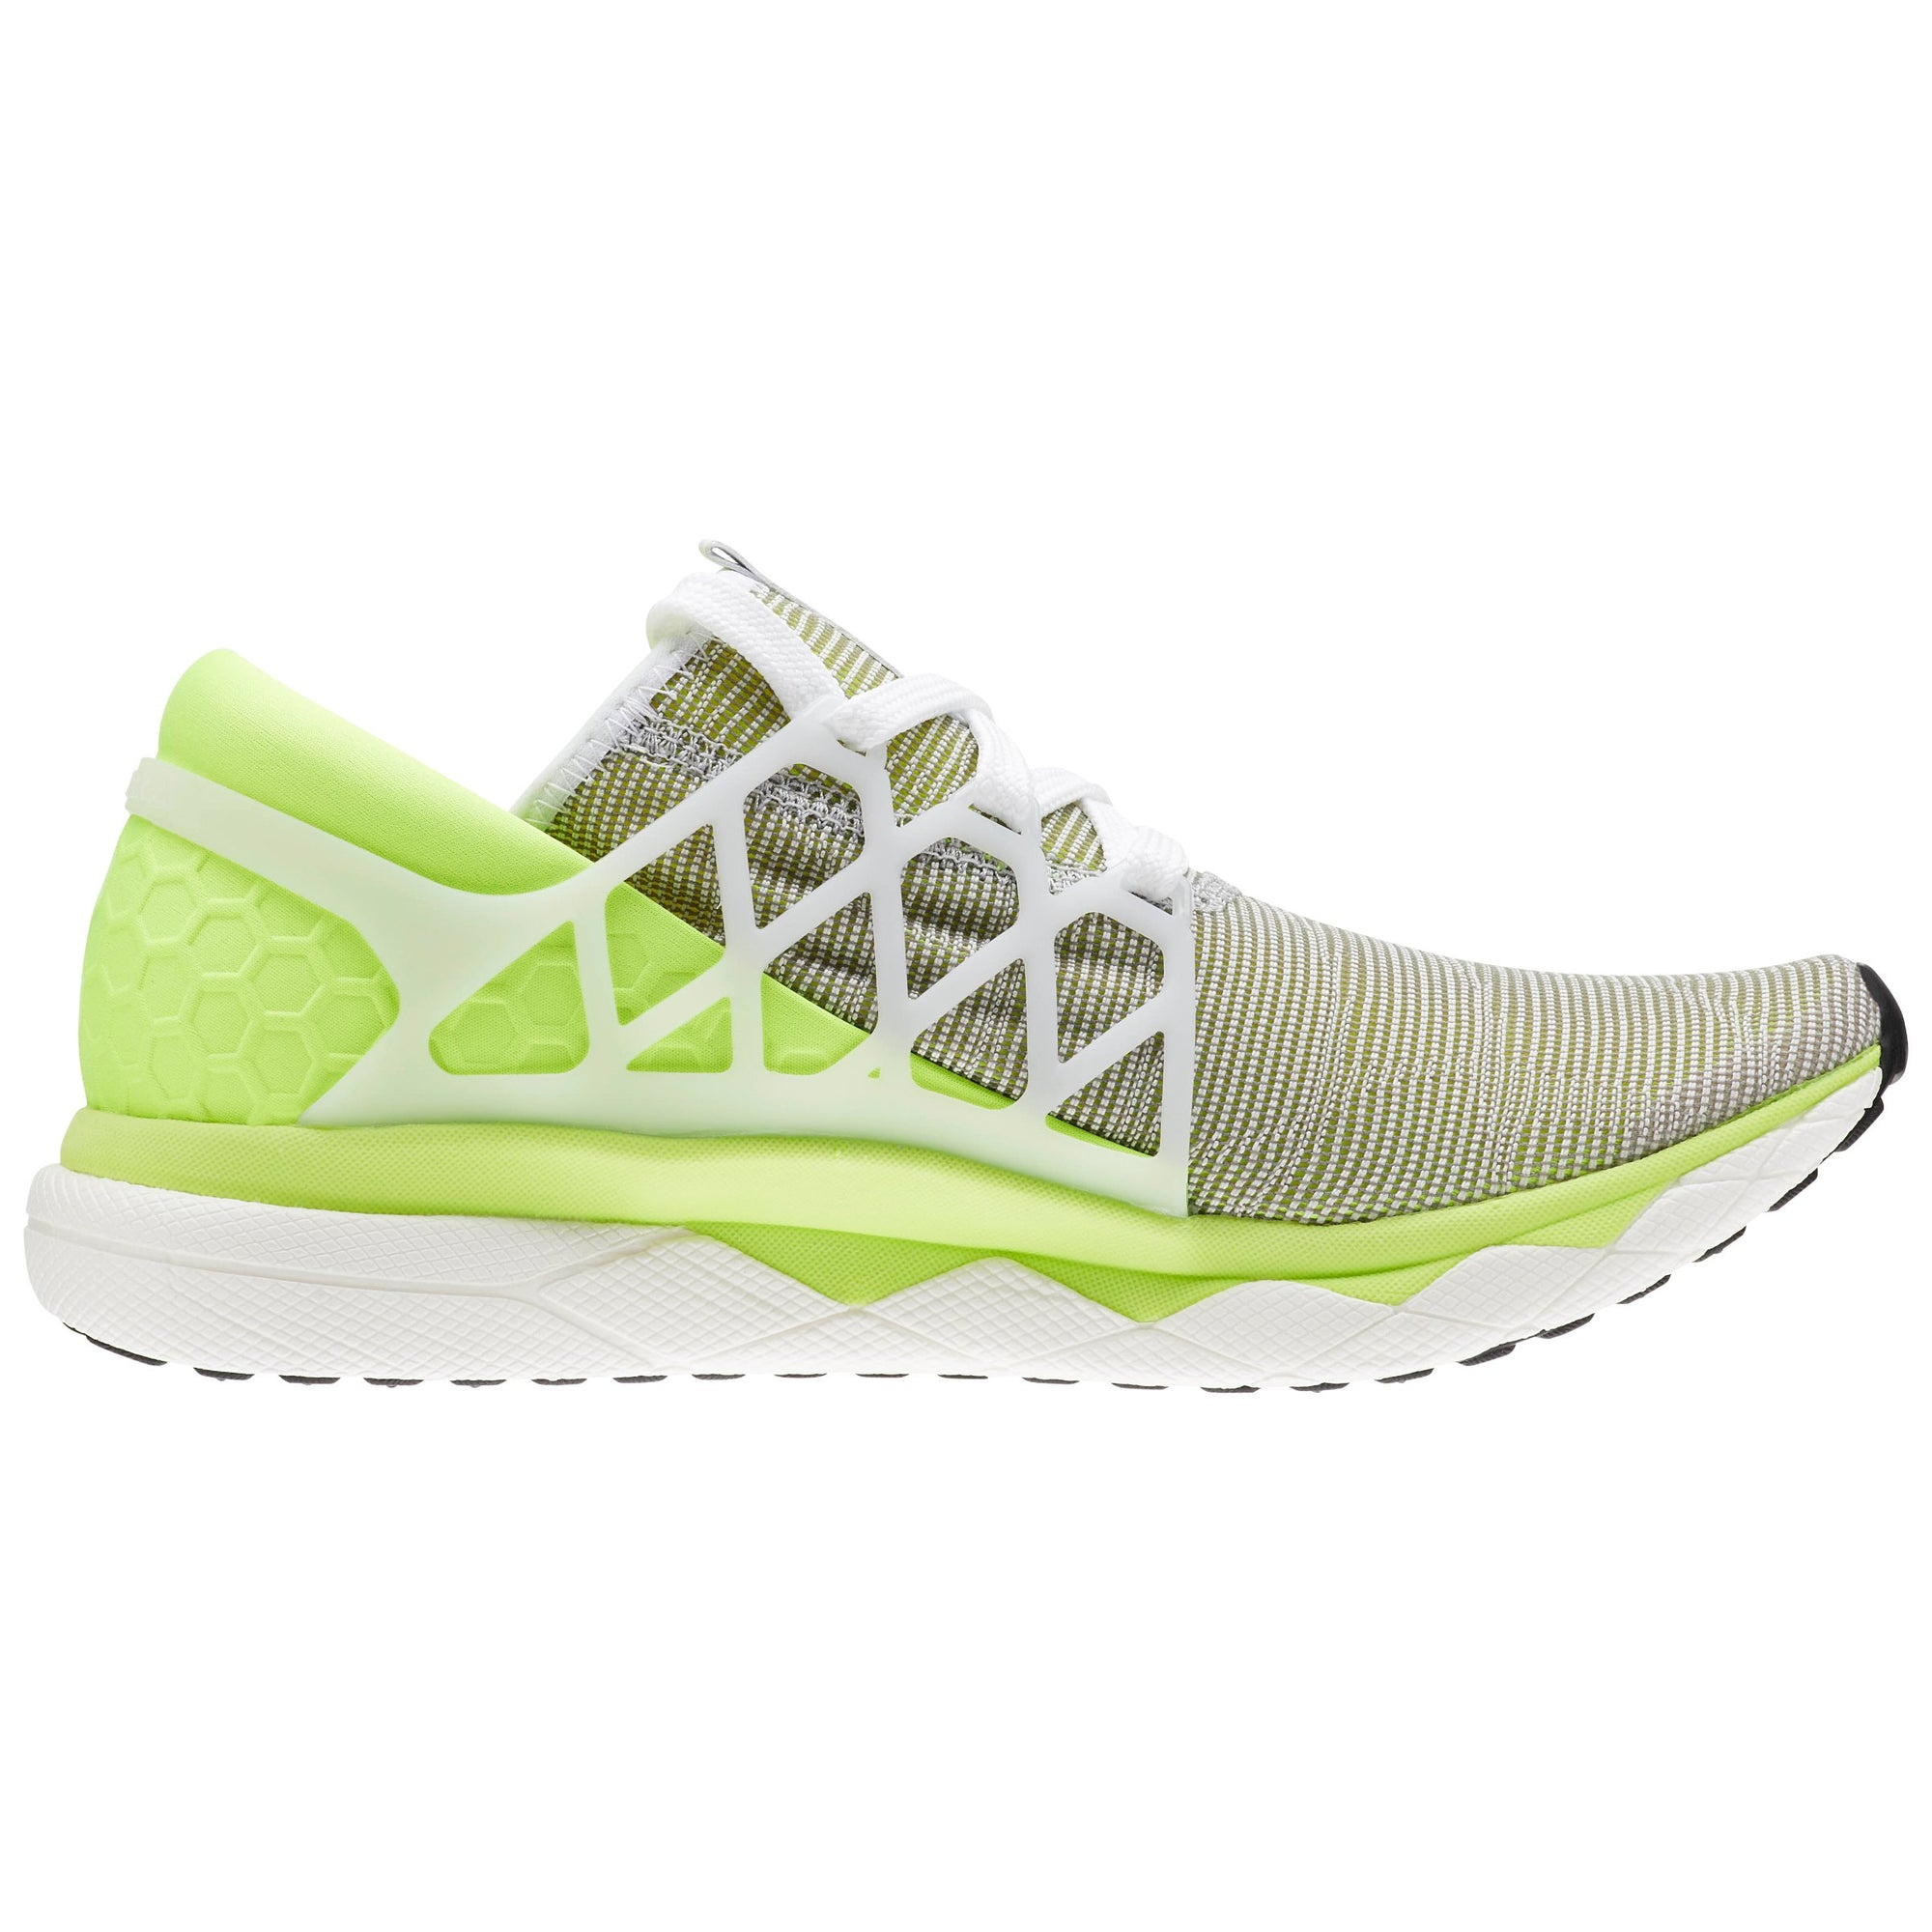 76e7fc51ce9 Buy Reebok Men Floatride Run Flexweave Running Shoes